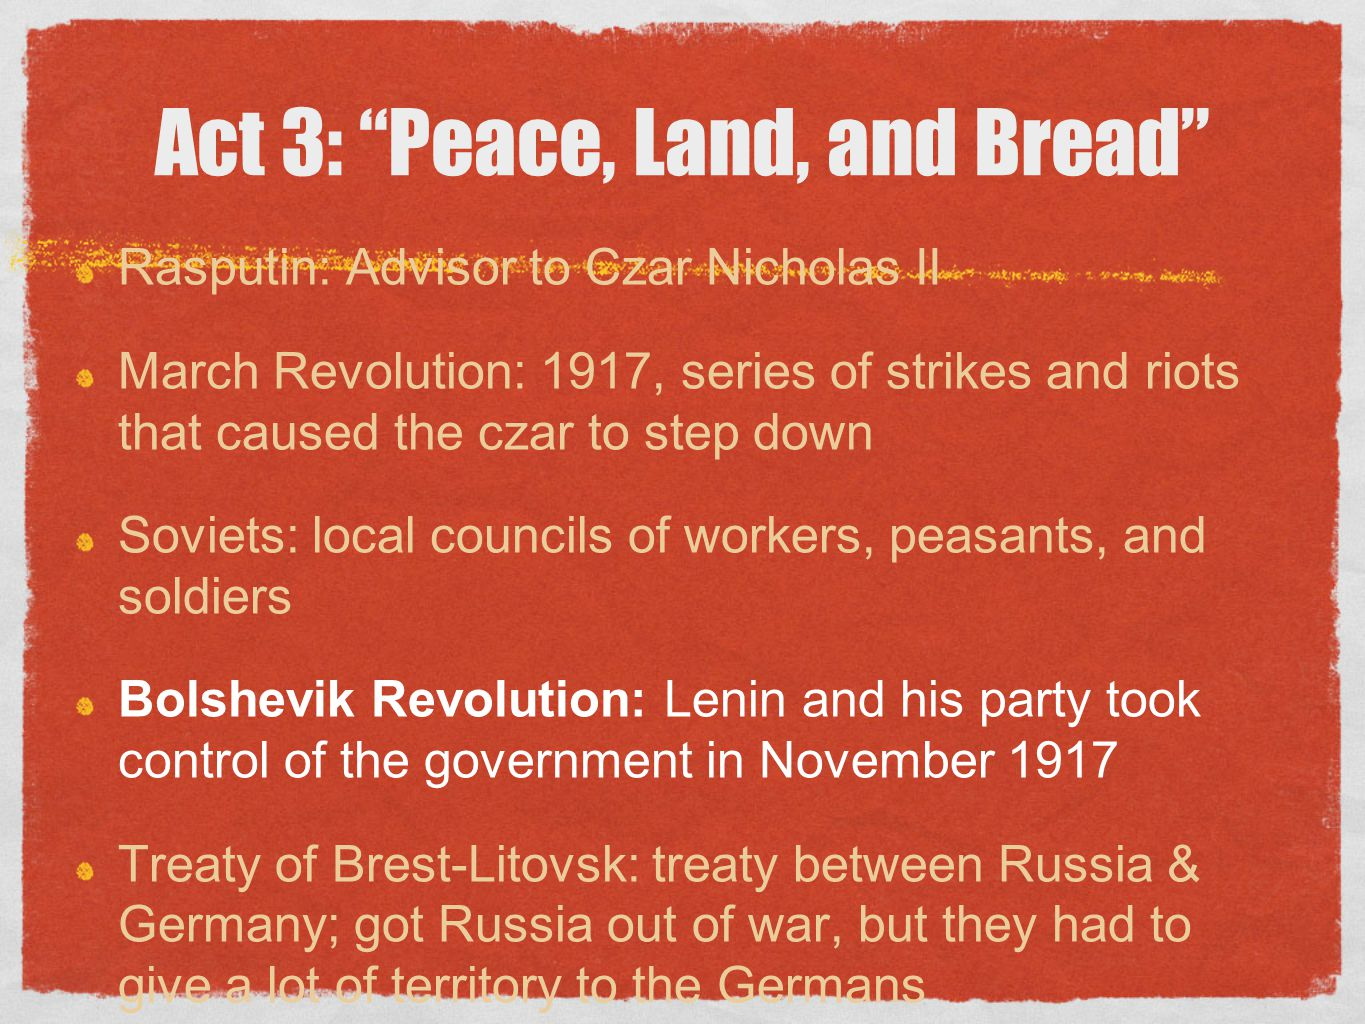 act 4: civil war White Army: Opponents of Bolsheviks Red Army: Bolshevik army led by Leon Trotsky USSR: United Soviet Socialist Republics Communist Party: Bolsheviks renamed themselves Communists based on Marx' ideas that there should be a dictatorship of Proletariats